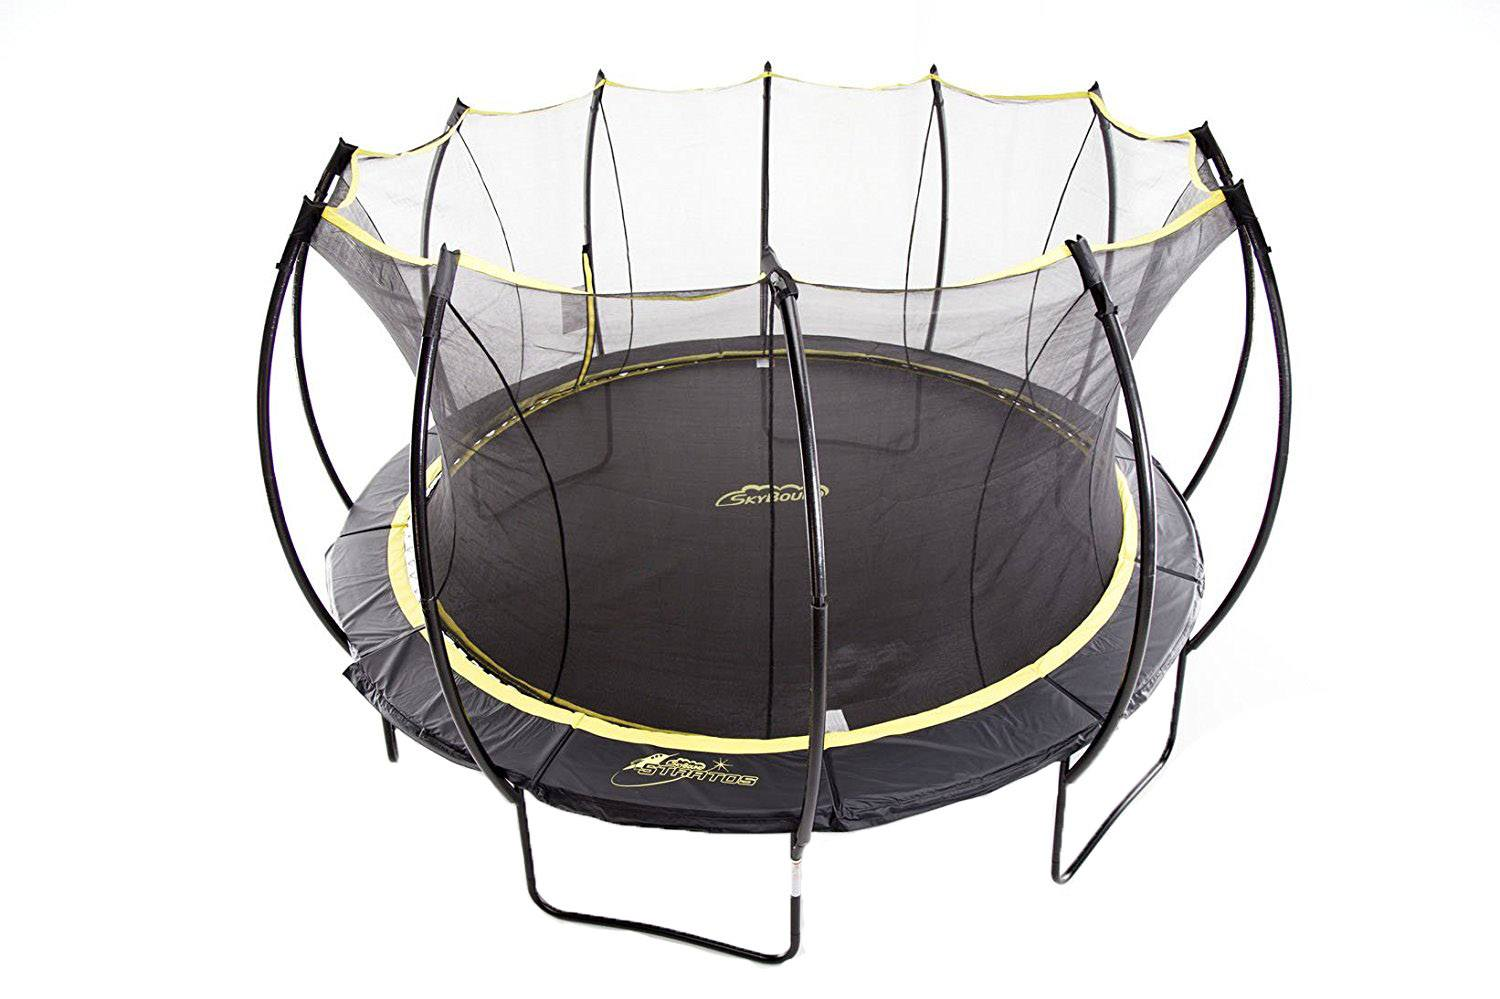 Best Trampoline 2018 The Top 10 Trampolines We Could Find